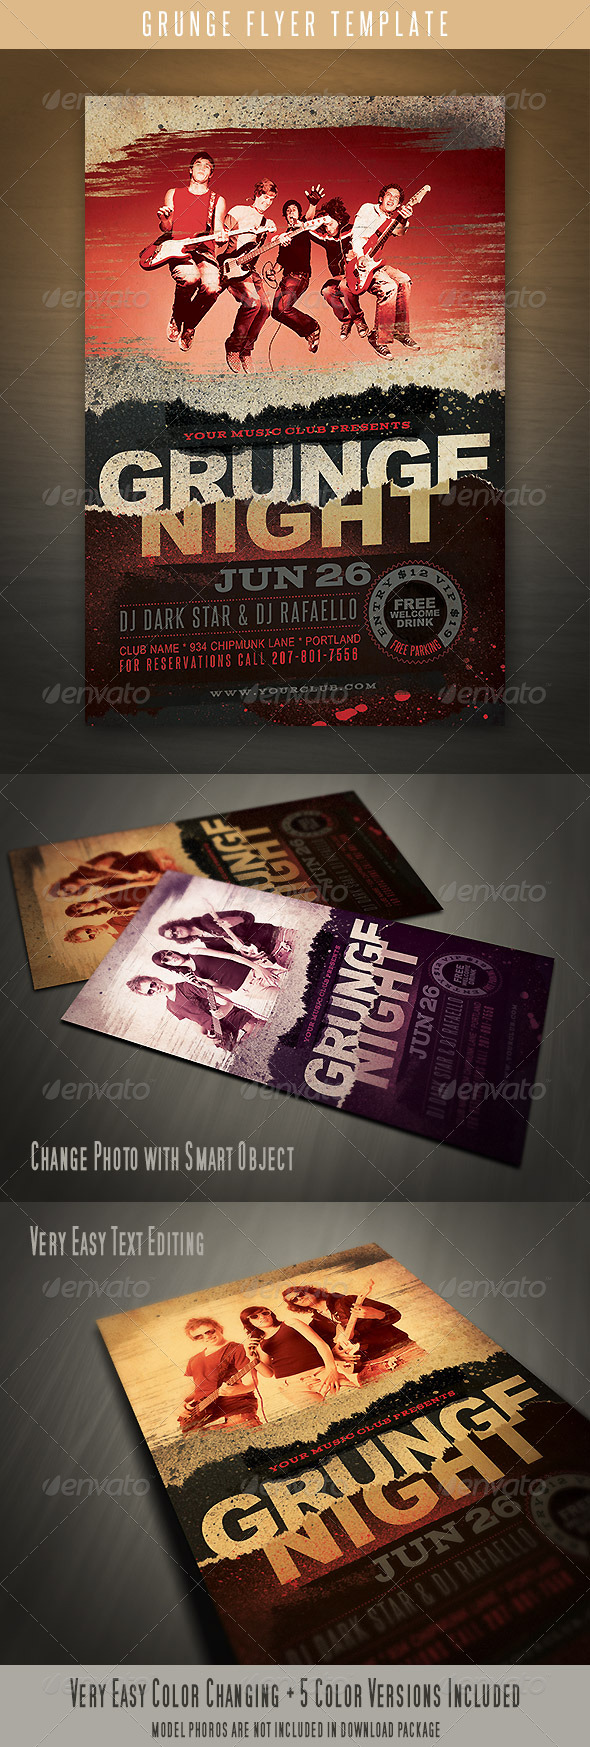 GraphicRiver Grunge Flyer Template 4429843